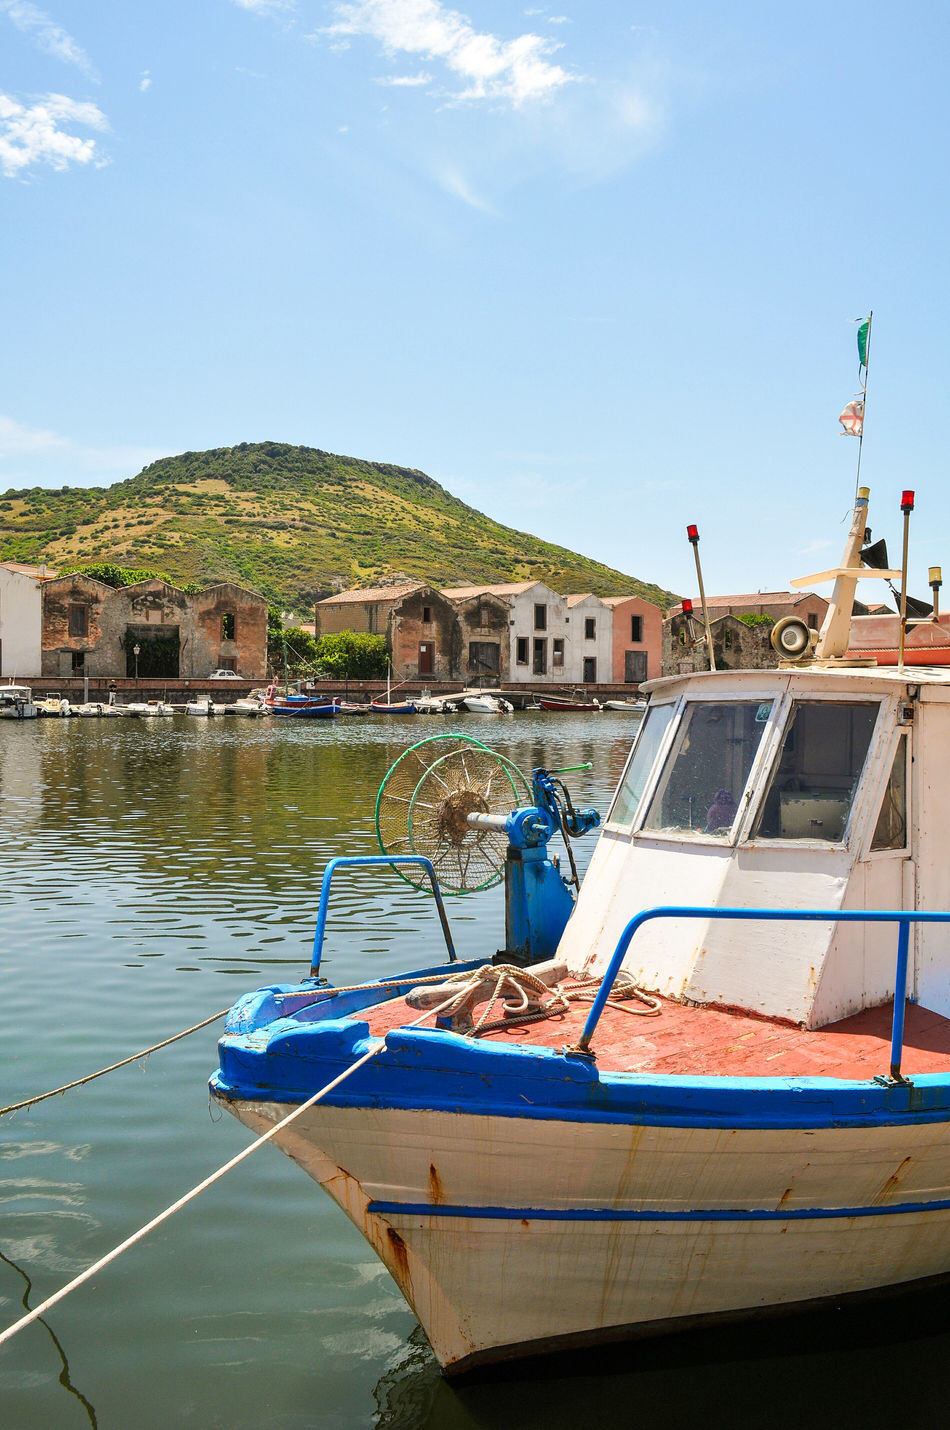 Water Nautical Vessel Reflection Blue Waterfront Outdoors No People City Day Sky Cityscape Architecture River Fishboat Fishermen Houses Vertical Shot Sardinia Sardegna Italy